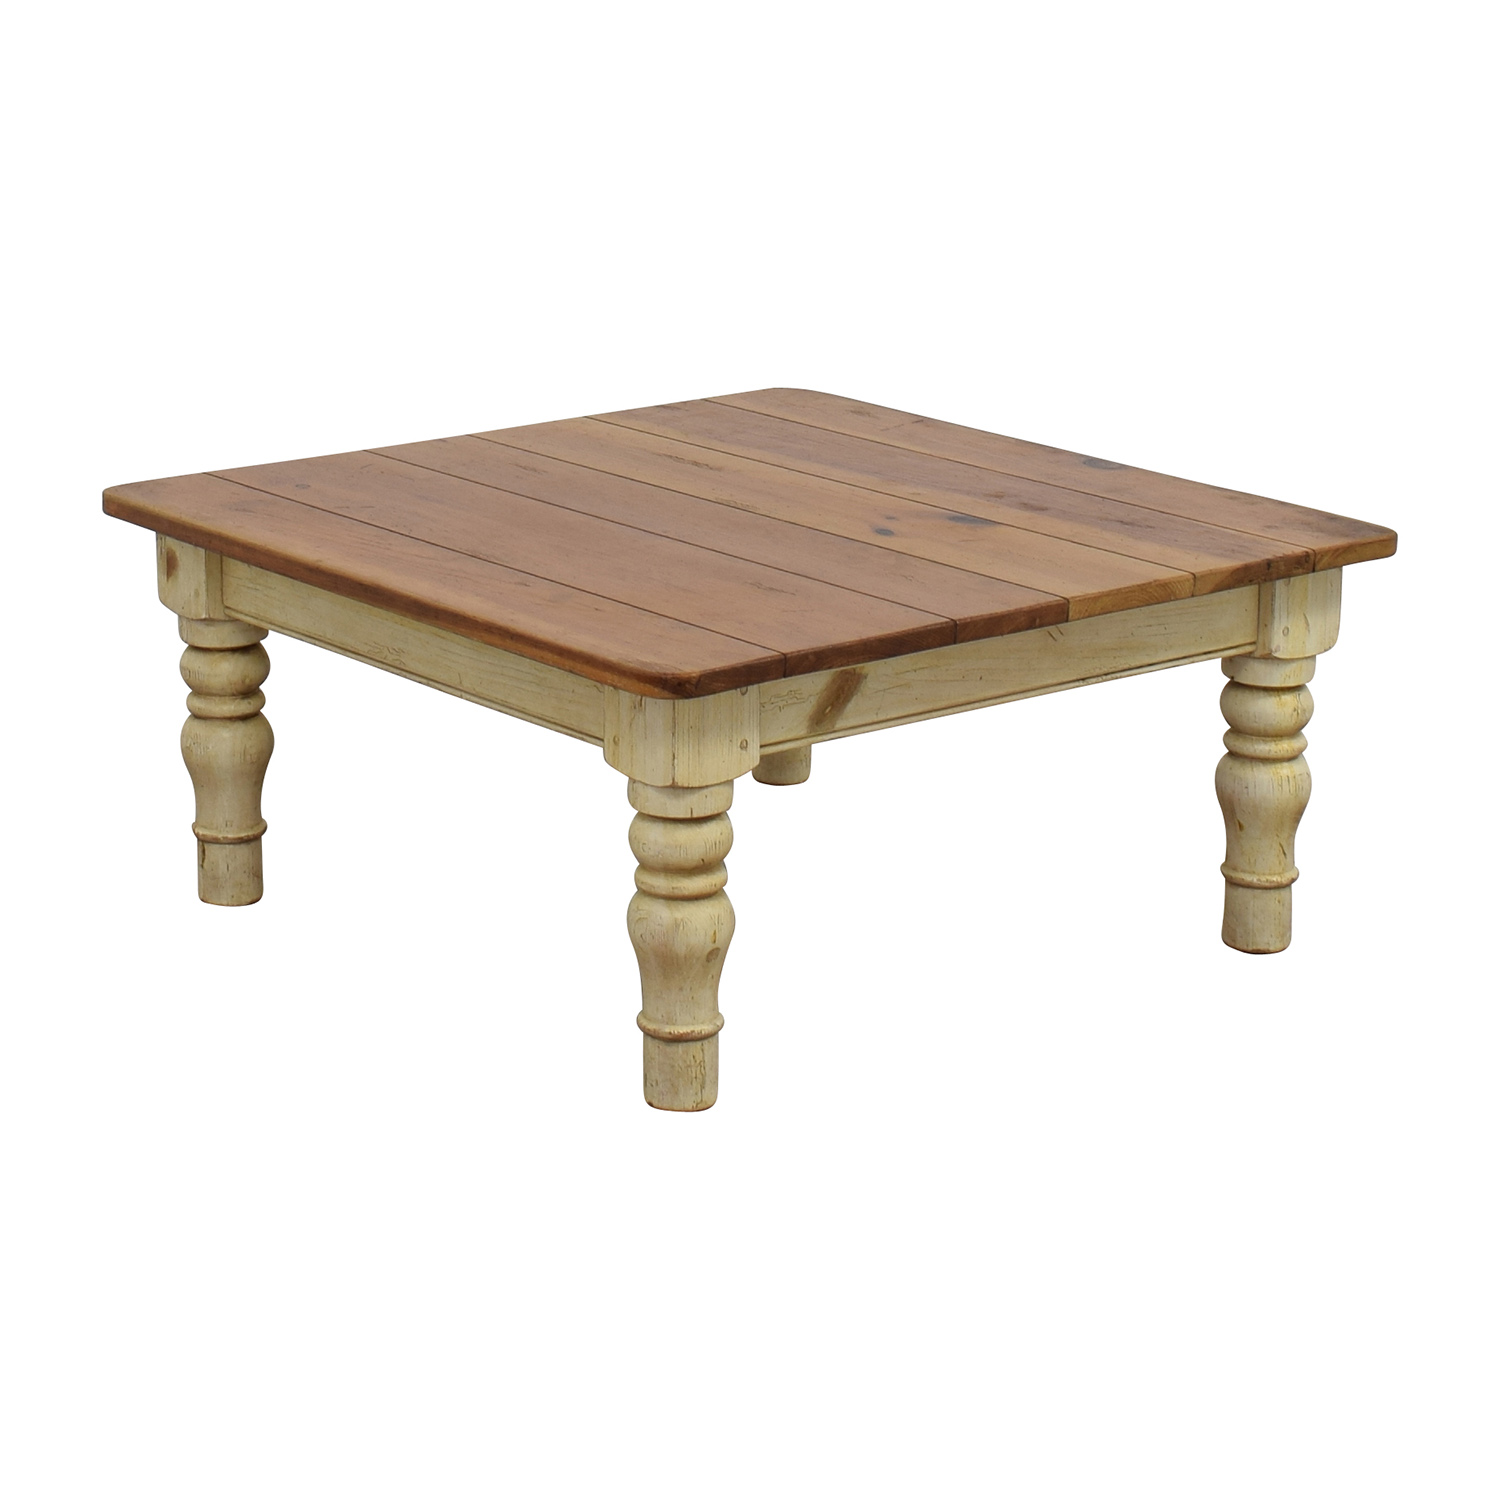 Ethan Allen Tuscan Coffee Table: Ethan Allen Ethan Allen Farmhouse Cherry Wood